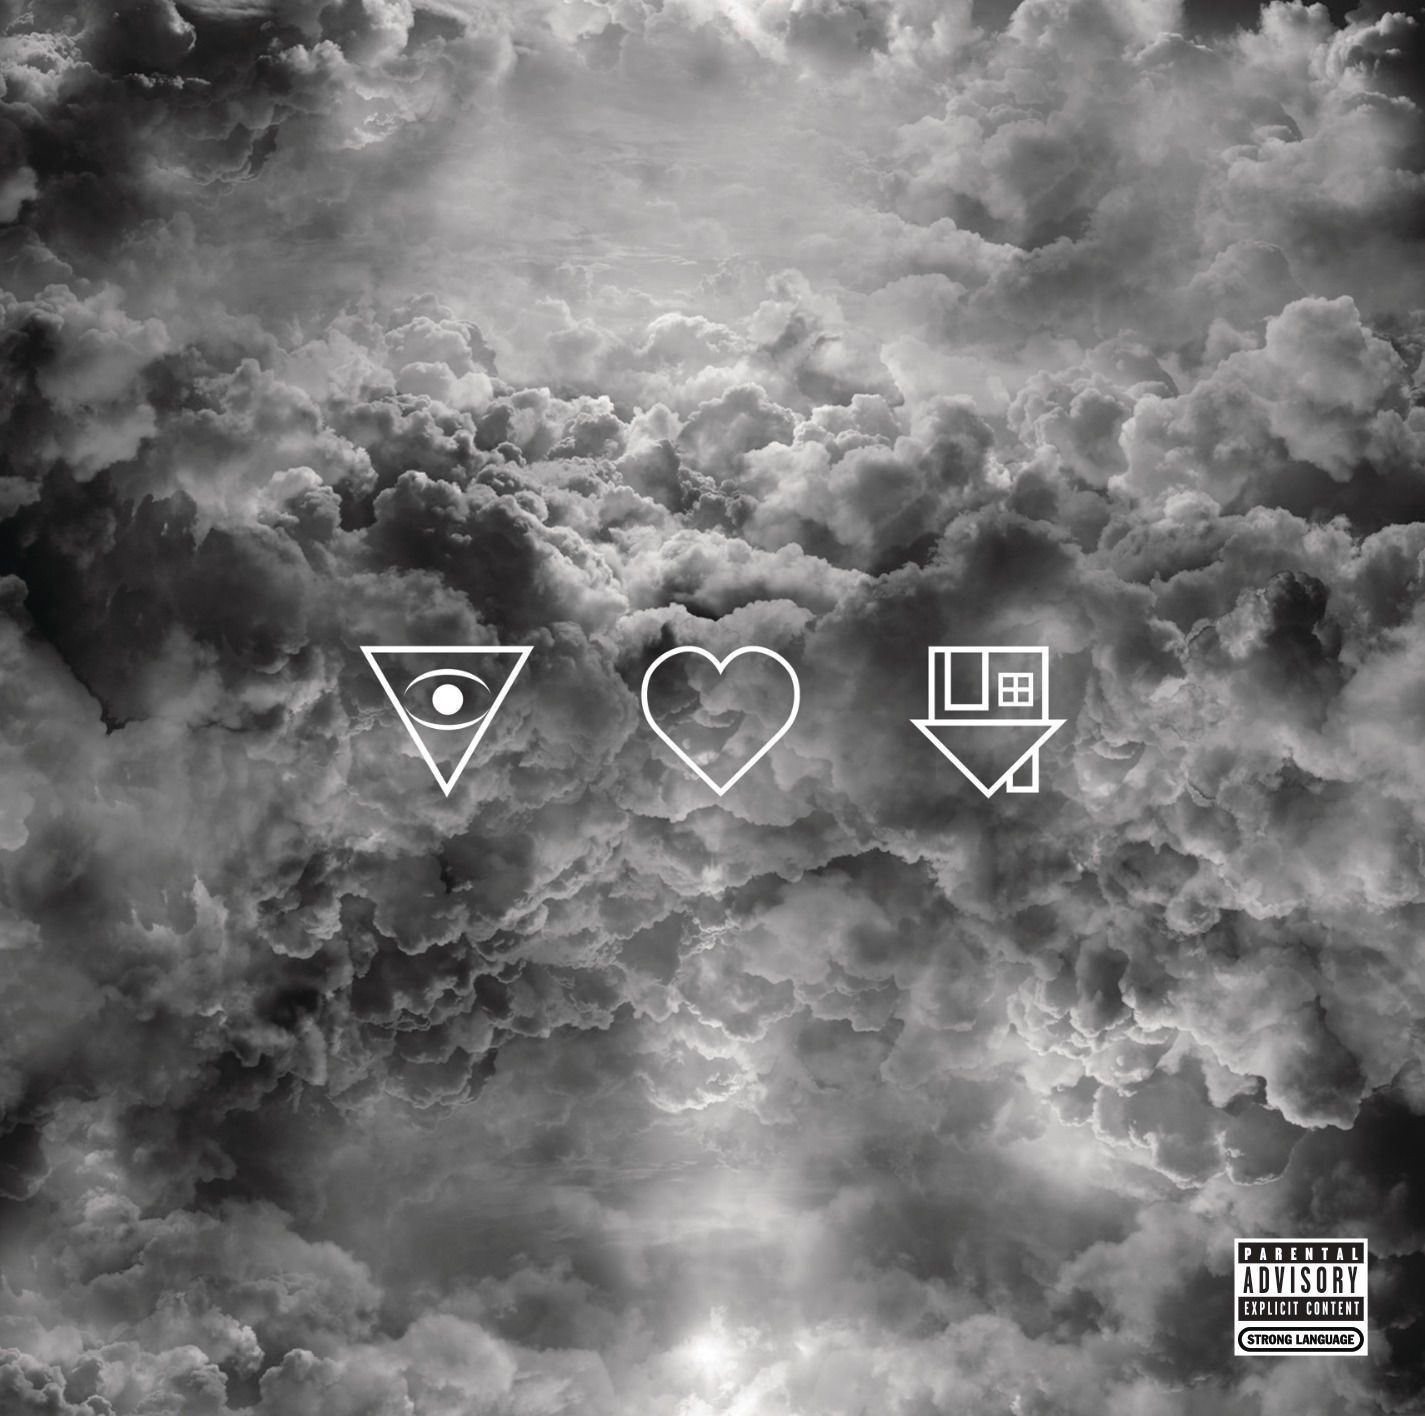 I Love You. by The Neighbourhood on iTunes The